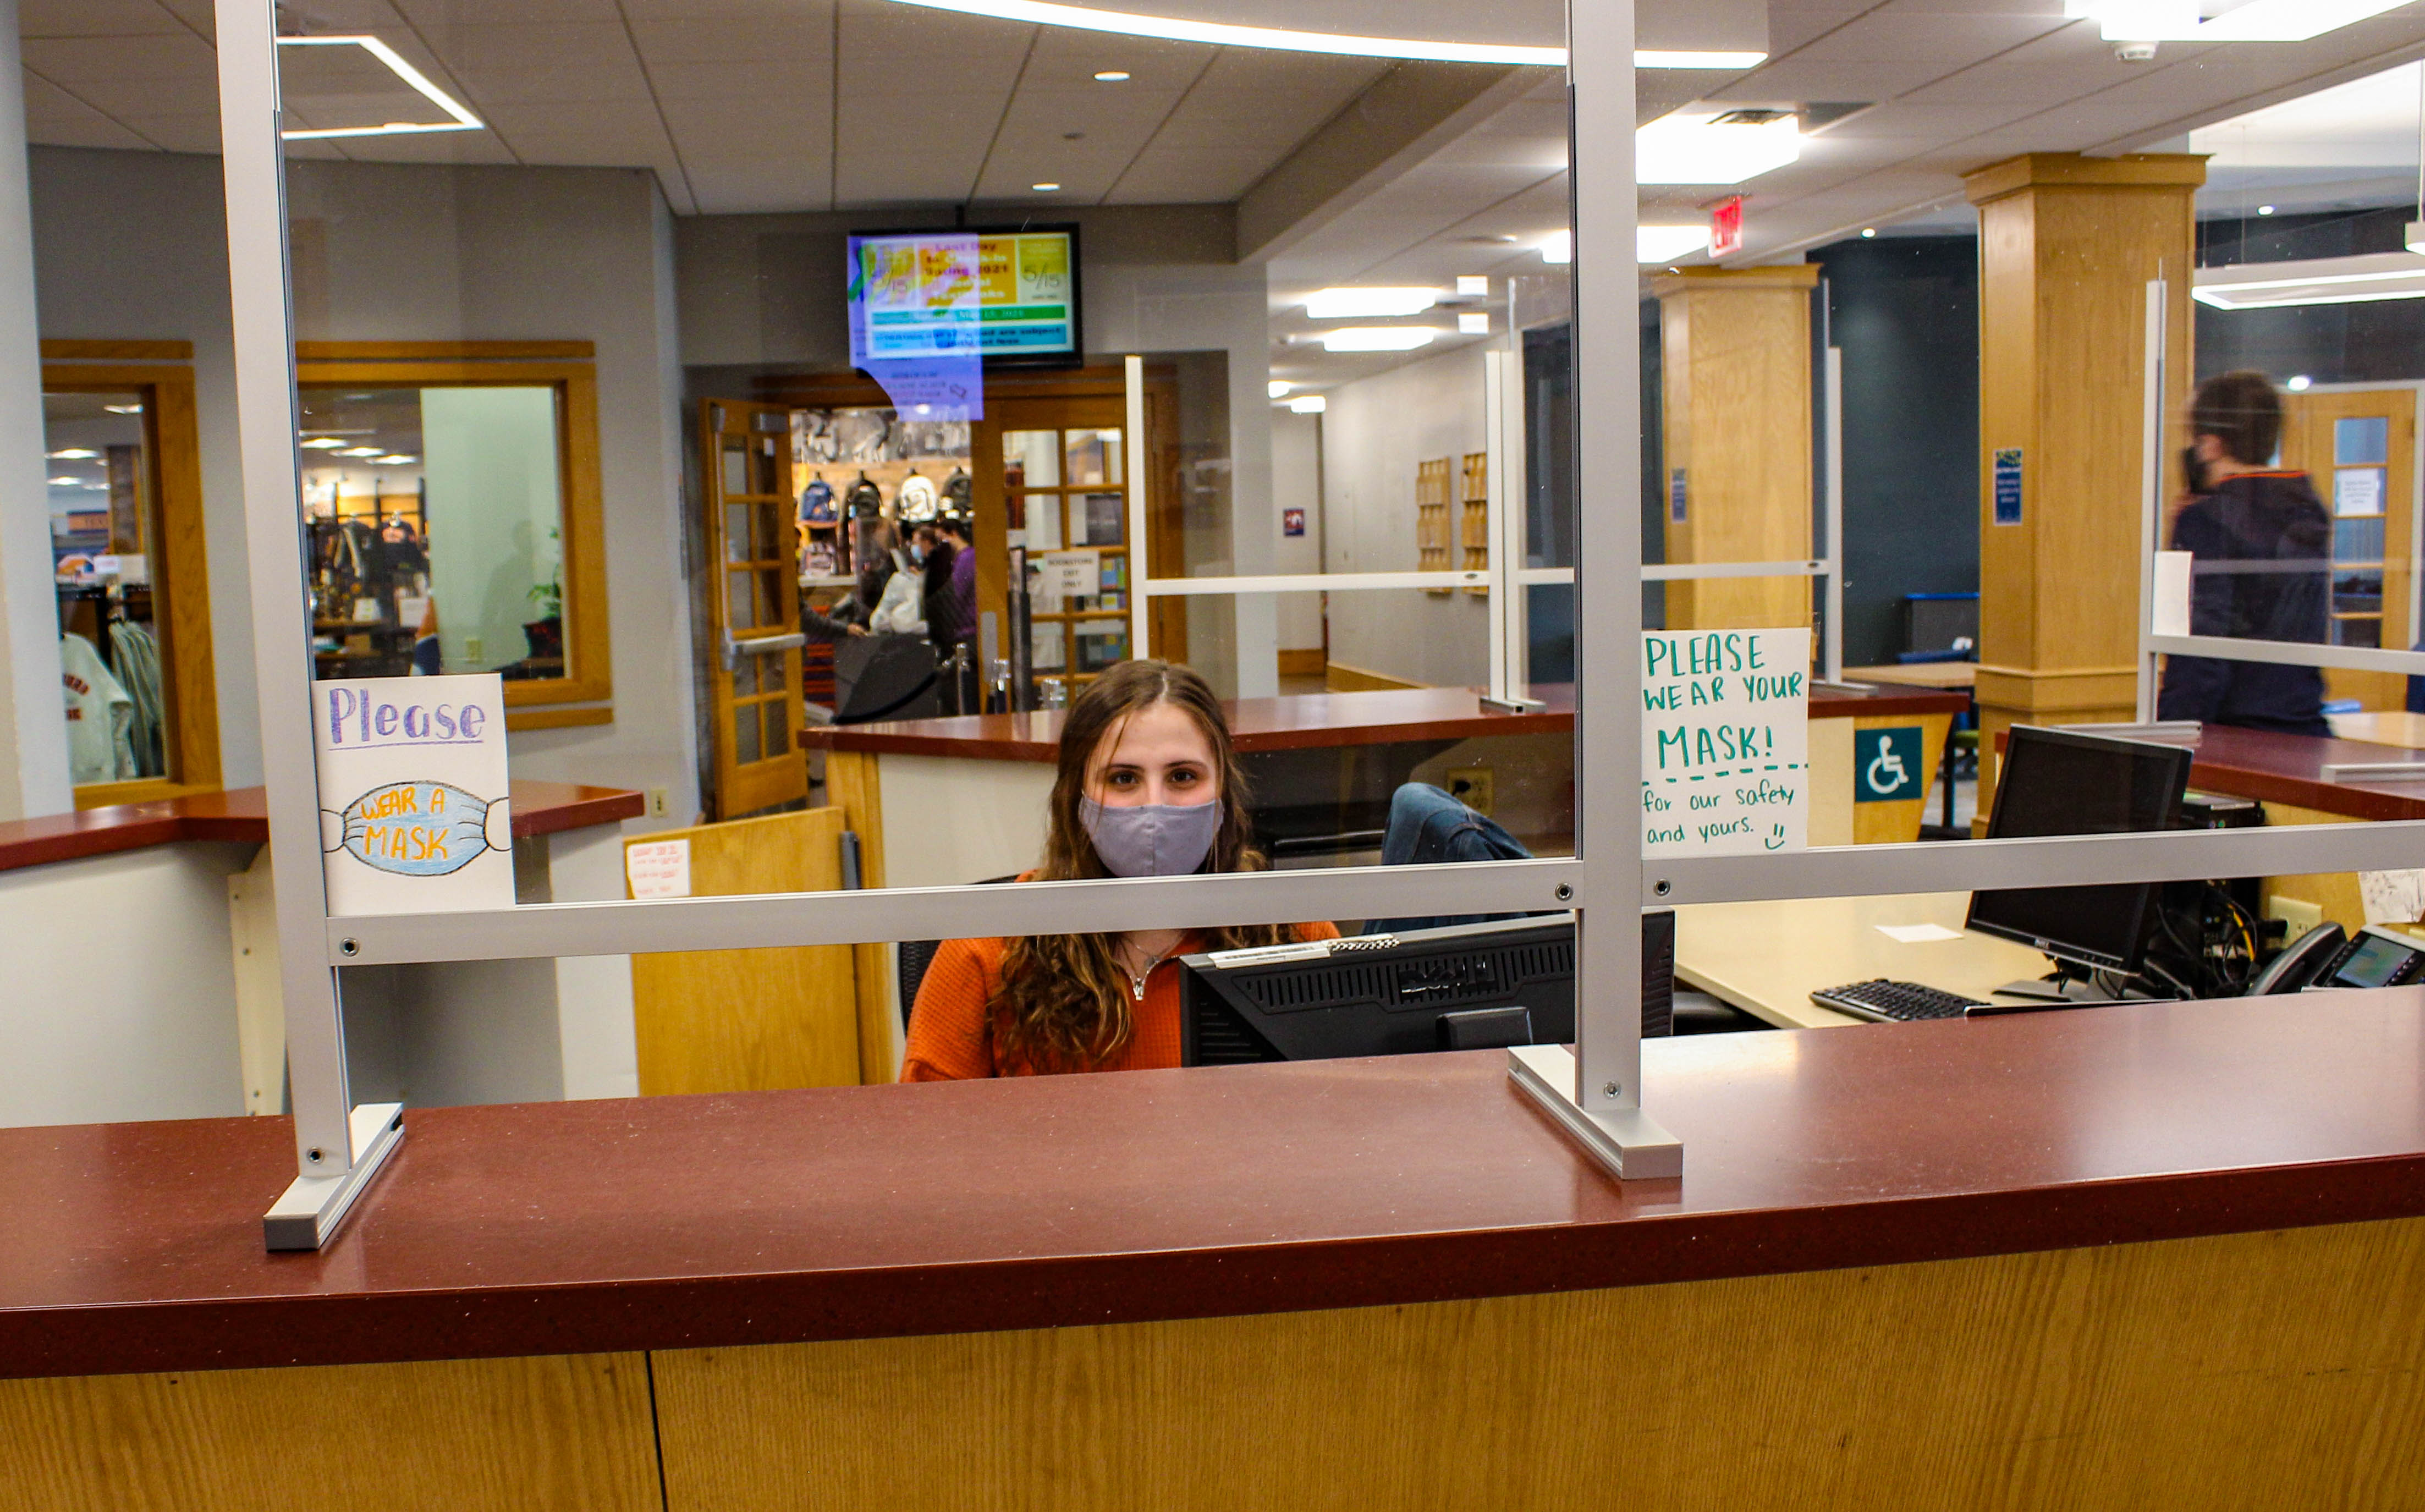 Hannah Lindert '22 works her shift at the CUB desk. Plastic dividers like the ones pictured above help are measures implemented with the goal of reducing the spread of COVID-19 on campus. (Photo Mary Frasier/The Gettysburgian)